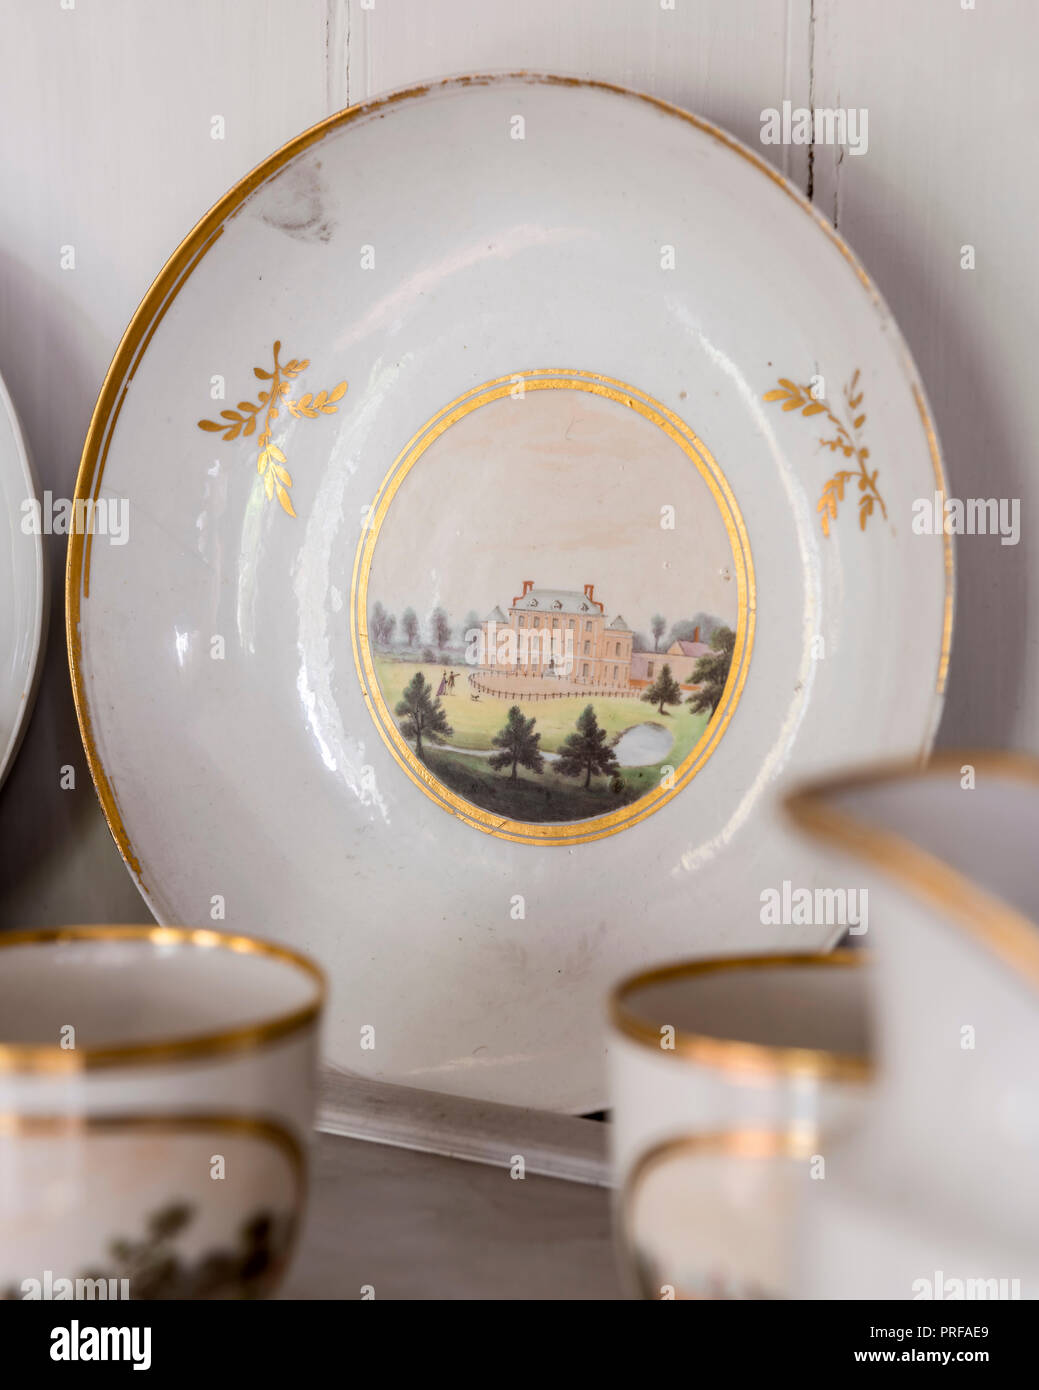 Hand painted crockery with facade of Milton Hall - Stock Image